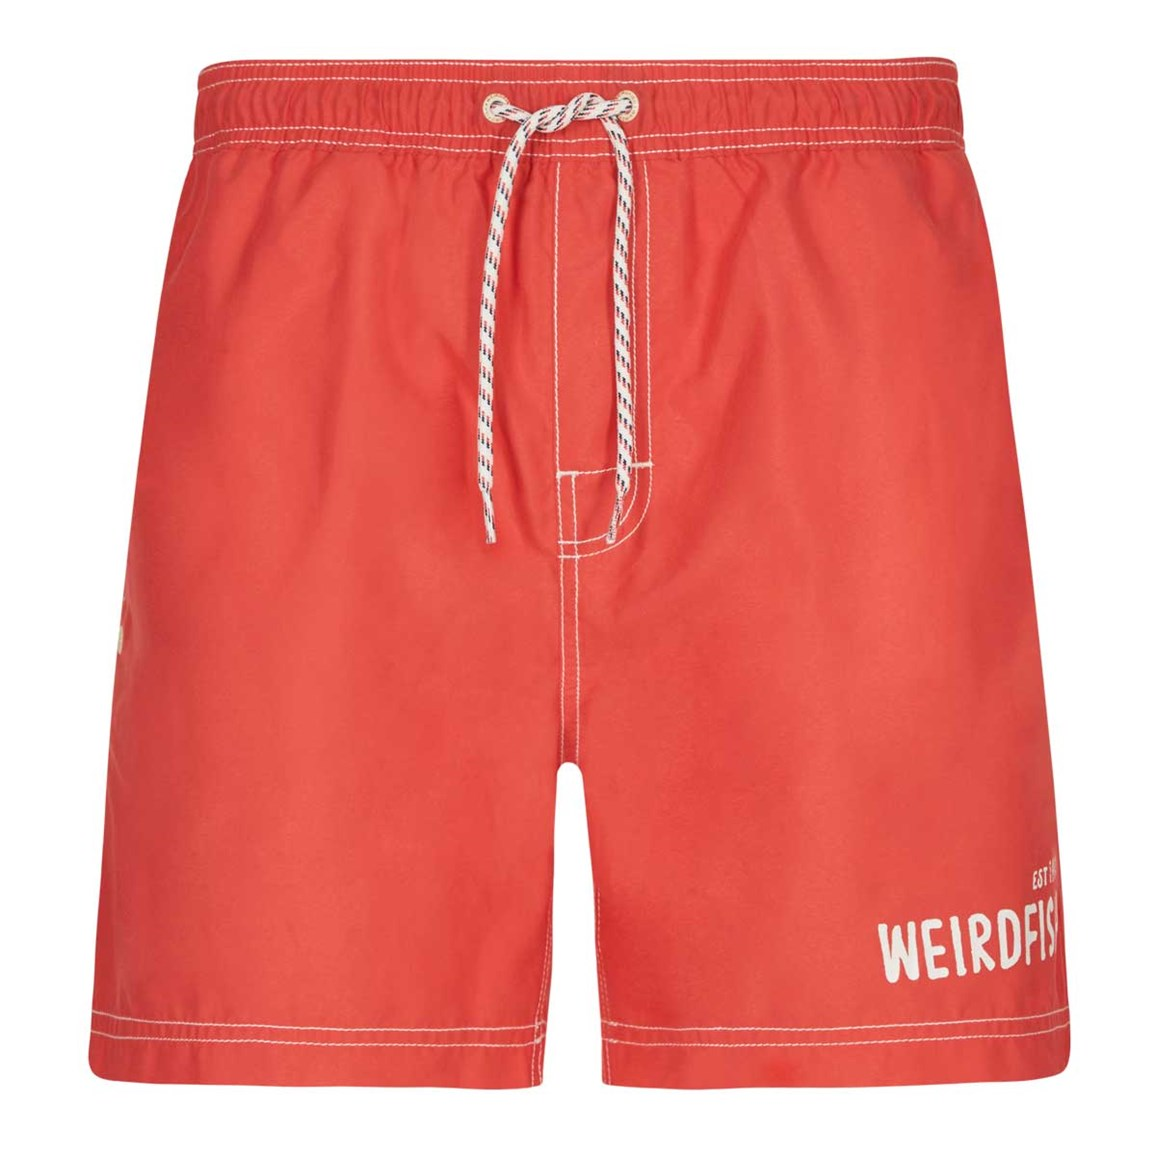 Weird Fish Volac Board Short Radical Red